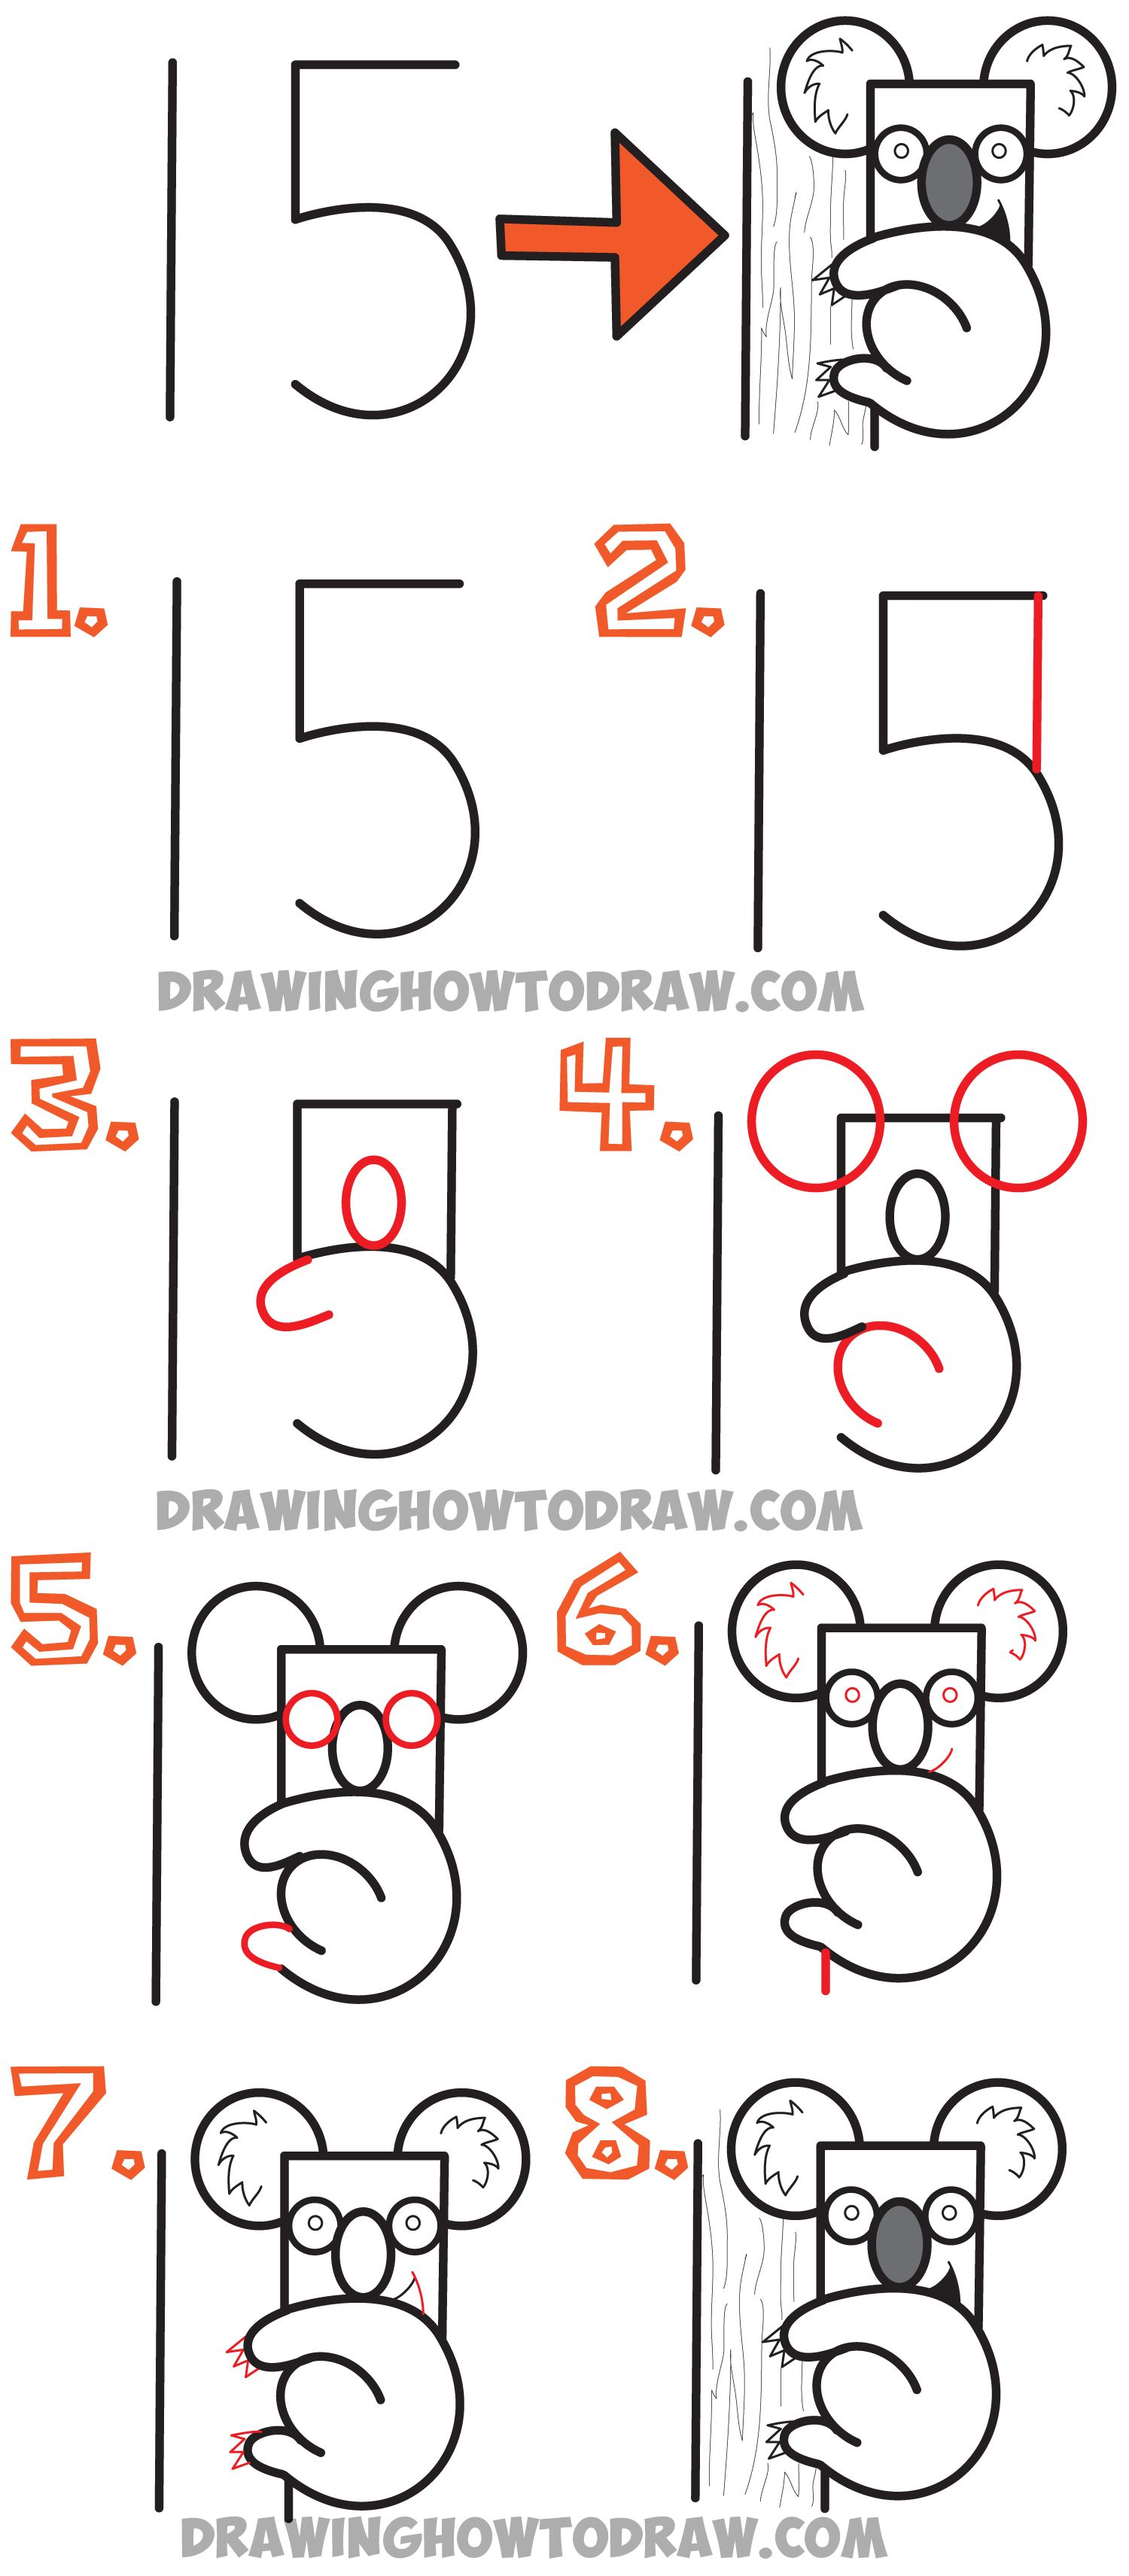 How To Draw A Cartoon Koala Bear From The Number 15 Easy Drawing Tutorial For Kids How To Draw Step By Step Drawing Tutorials Drawing Tutorial Easy Easy Drawings Word Drawings